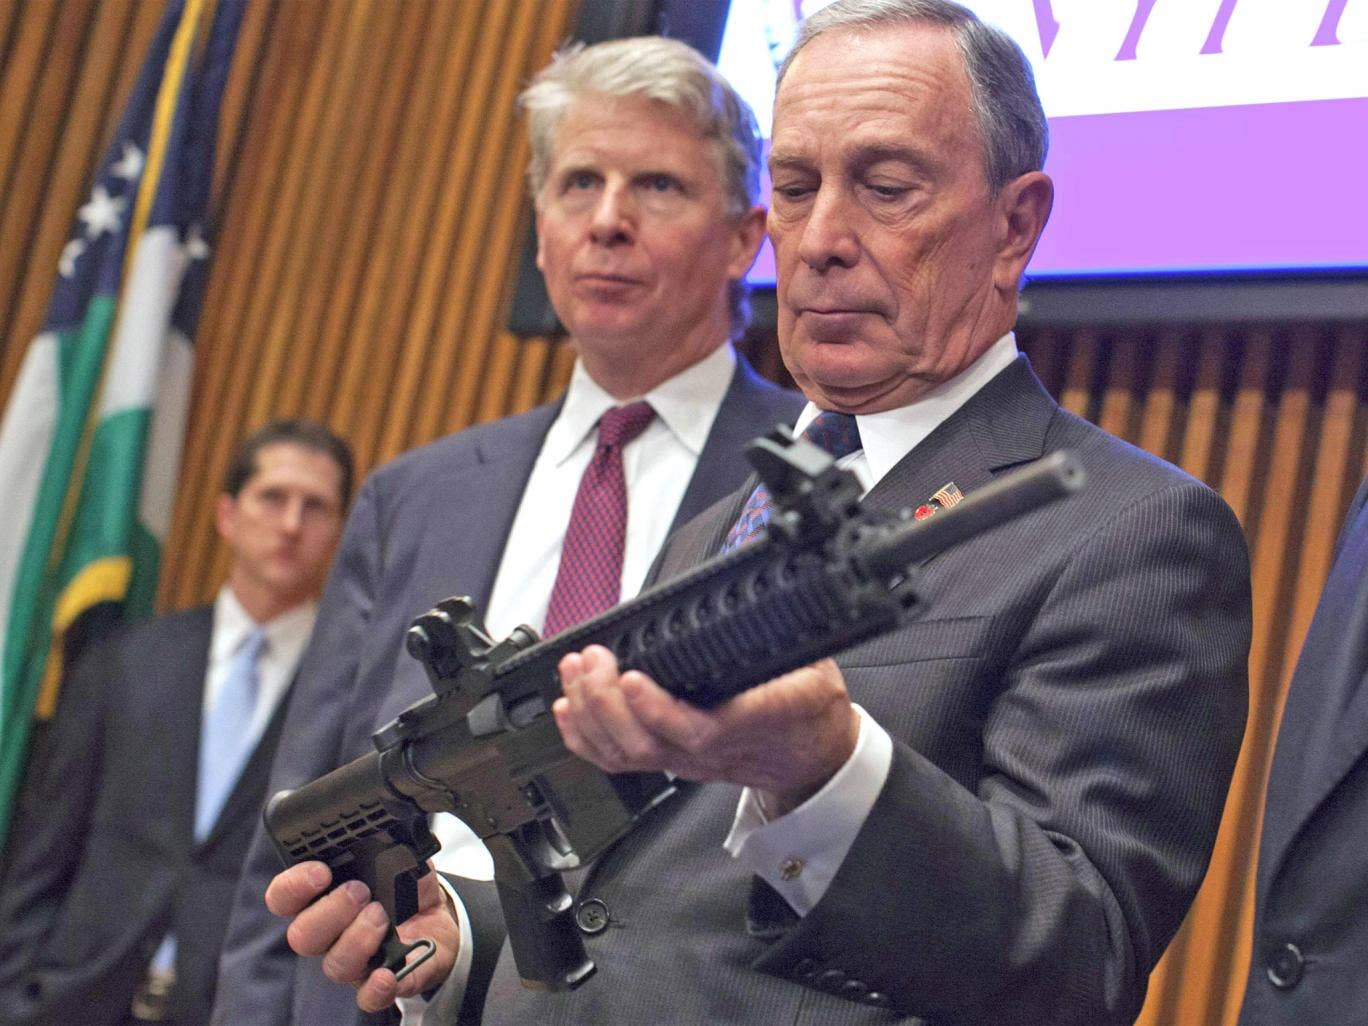 Michael Bloomberg examines a gun confiscated by police in New York during his term as the city's mayor in 2012